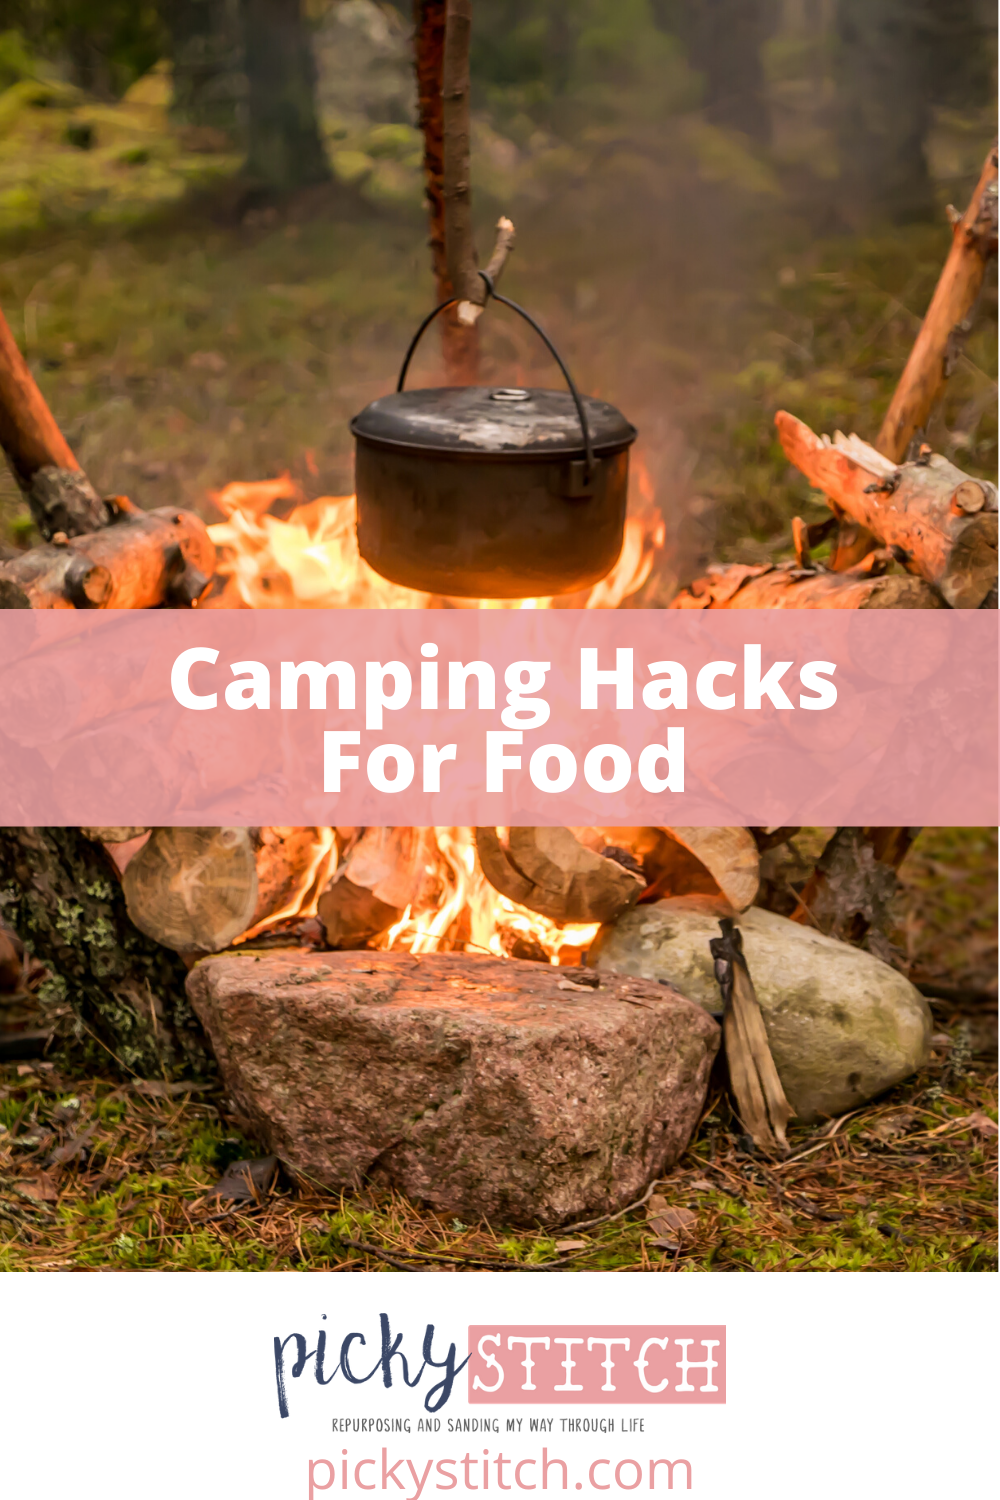 Take the hassle out of camping with these camping hacks to make your camping life easier! #campingideas #campingmadeeasy #pickystitchblog